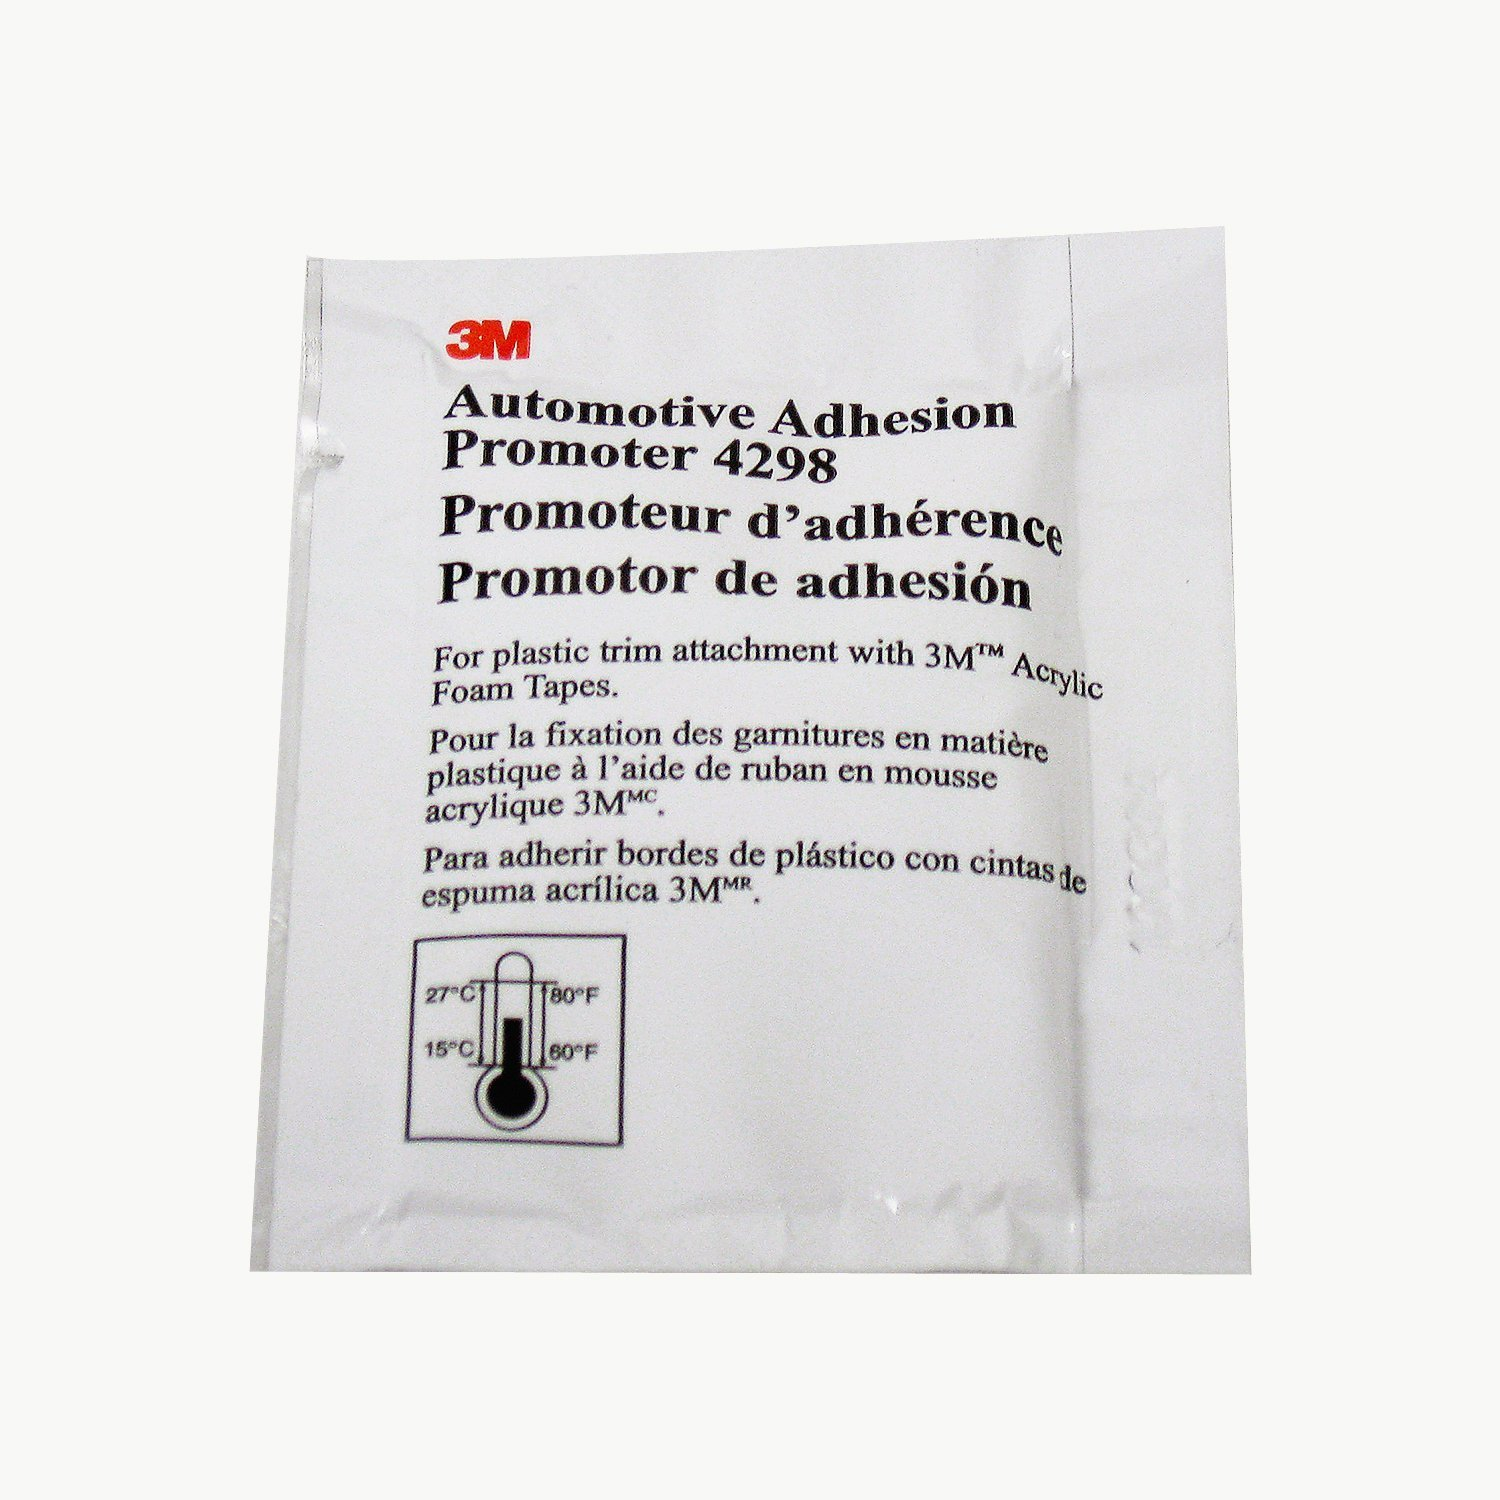 3M 27571 4298 Adhesion Promoter, Sponge Applicator